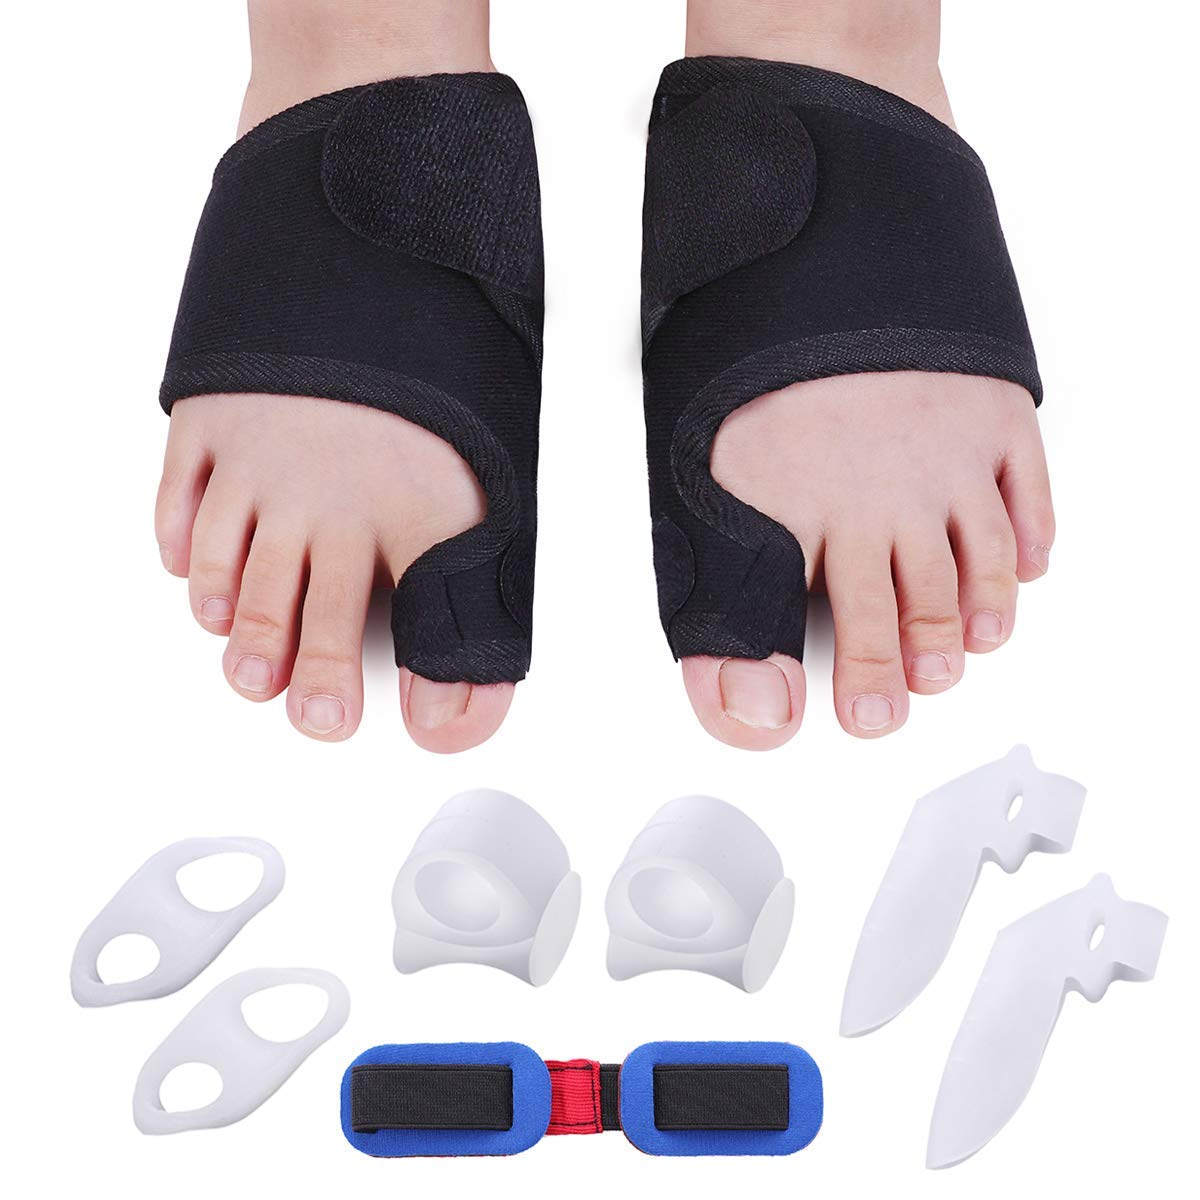 Bunion Corrector Bunion Relief Kit Bunion Splints Gel Toe Straightener Protect Separator Sleeves Toe Separators for Hallux Valgus Day Night Time Support for Women Men